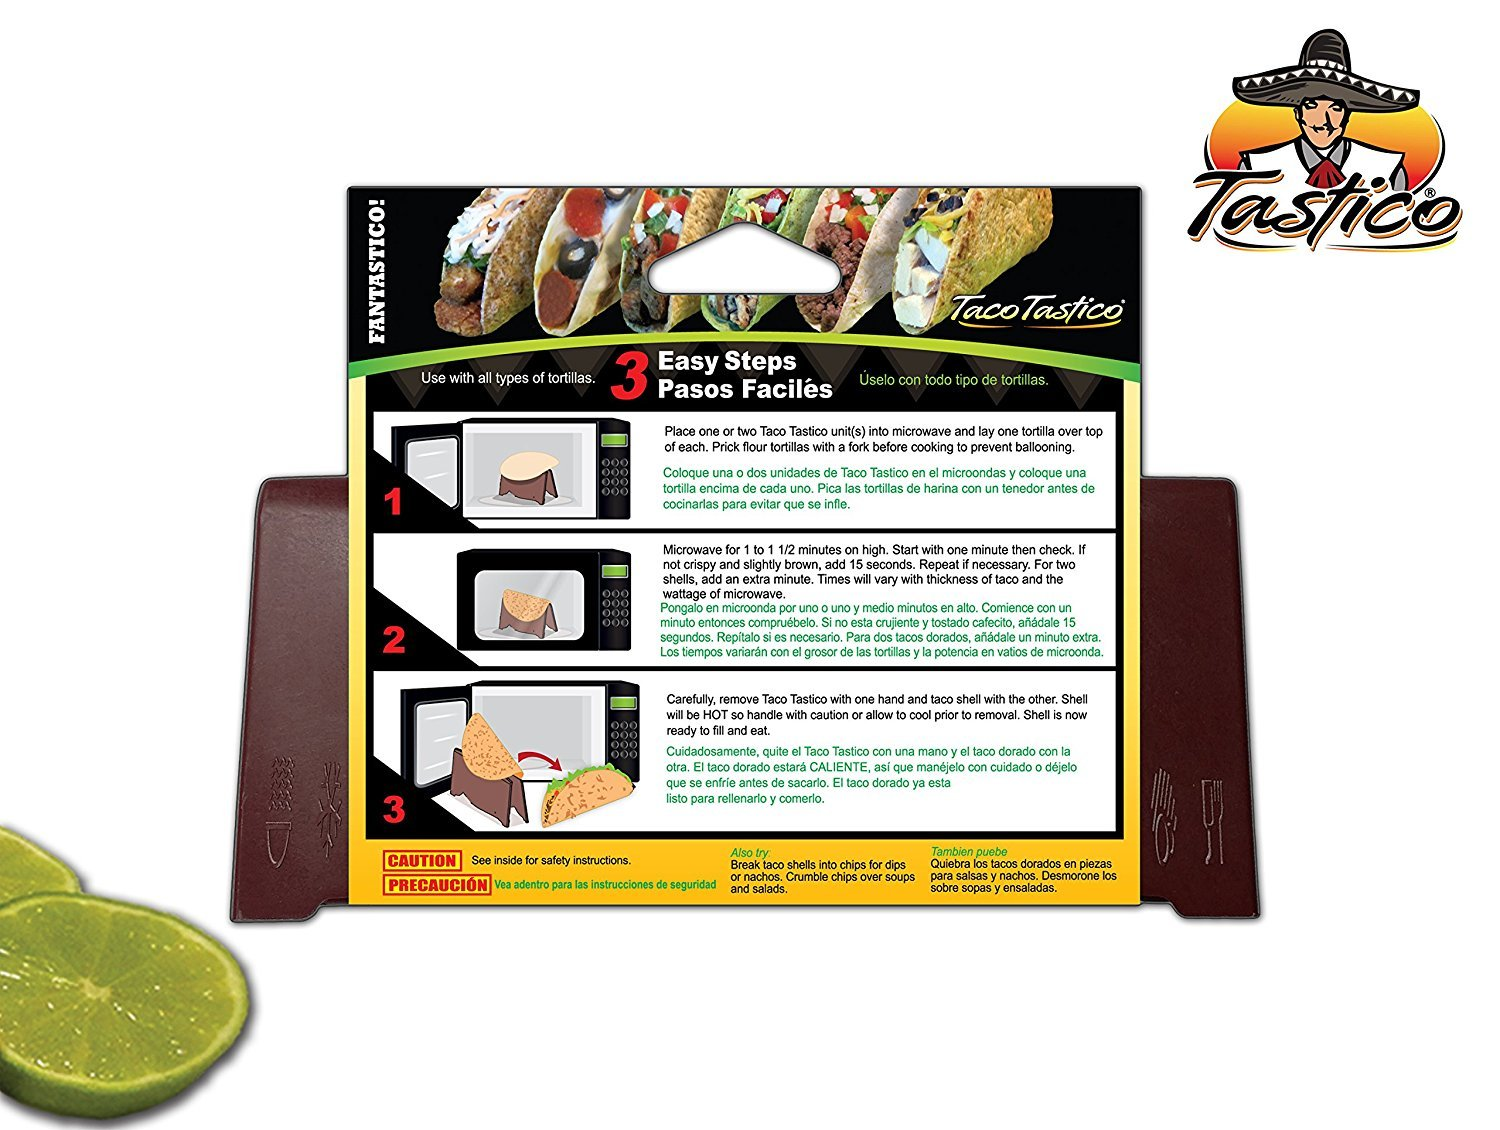 Amazon.com: Taco Tastico Makes Taco Shells Hard / Crunchy in your Microwave, Use with any Kind of Tortilla: Microwave Oven Accessories: Kitchen & Dining